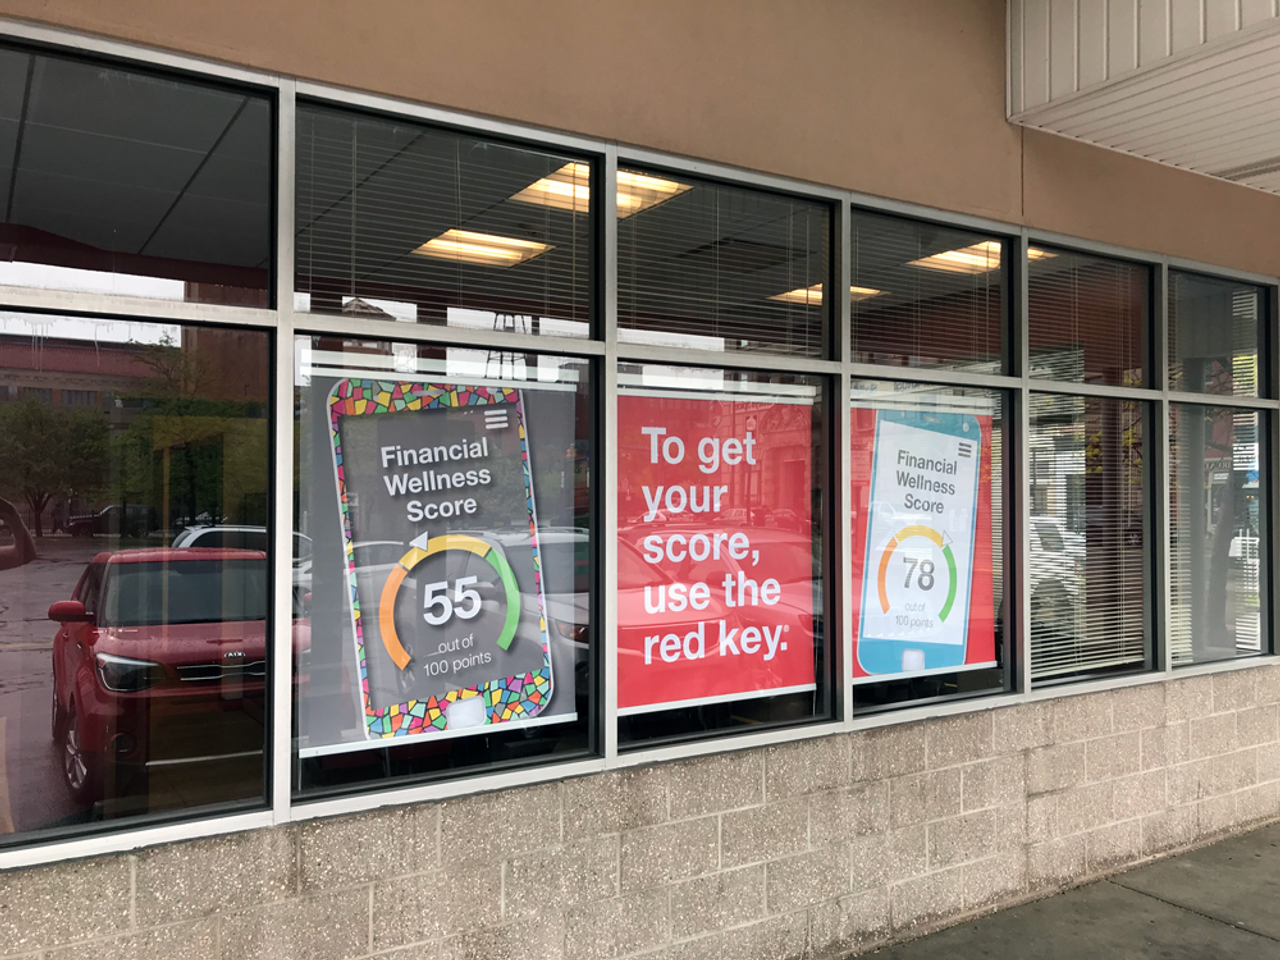 Retract banner works for displaying posters in store windows